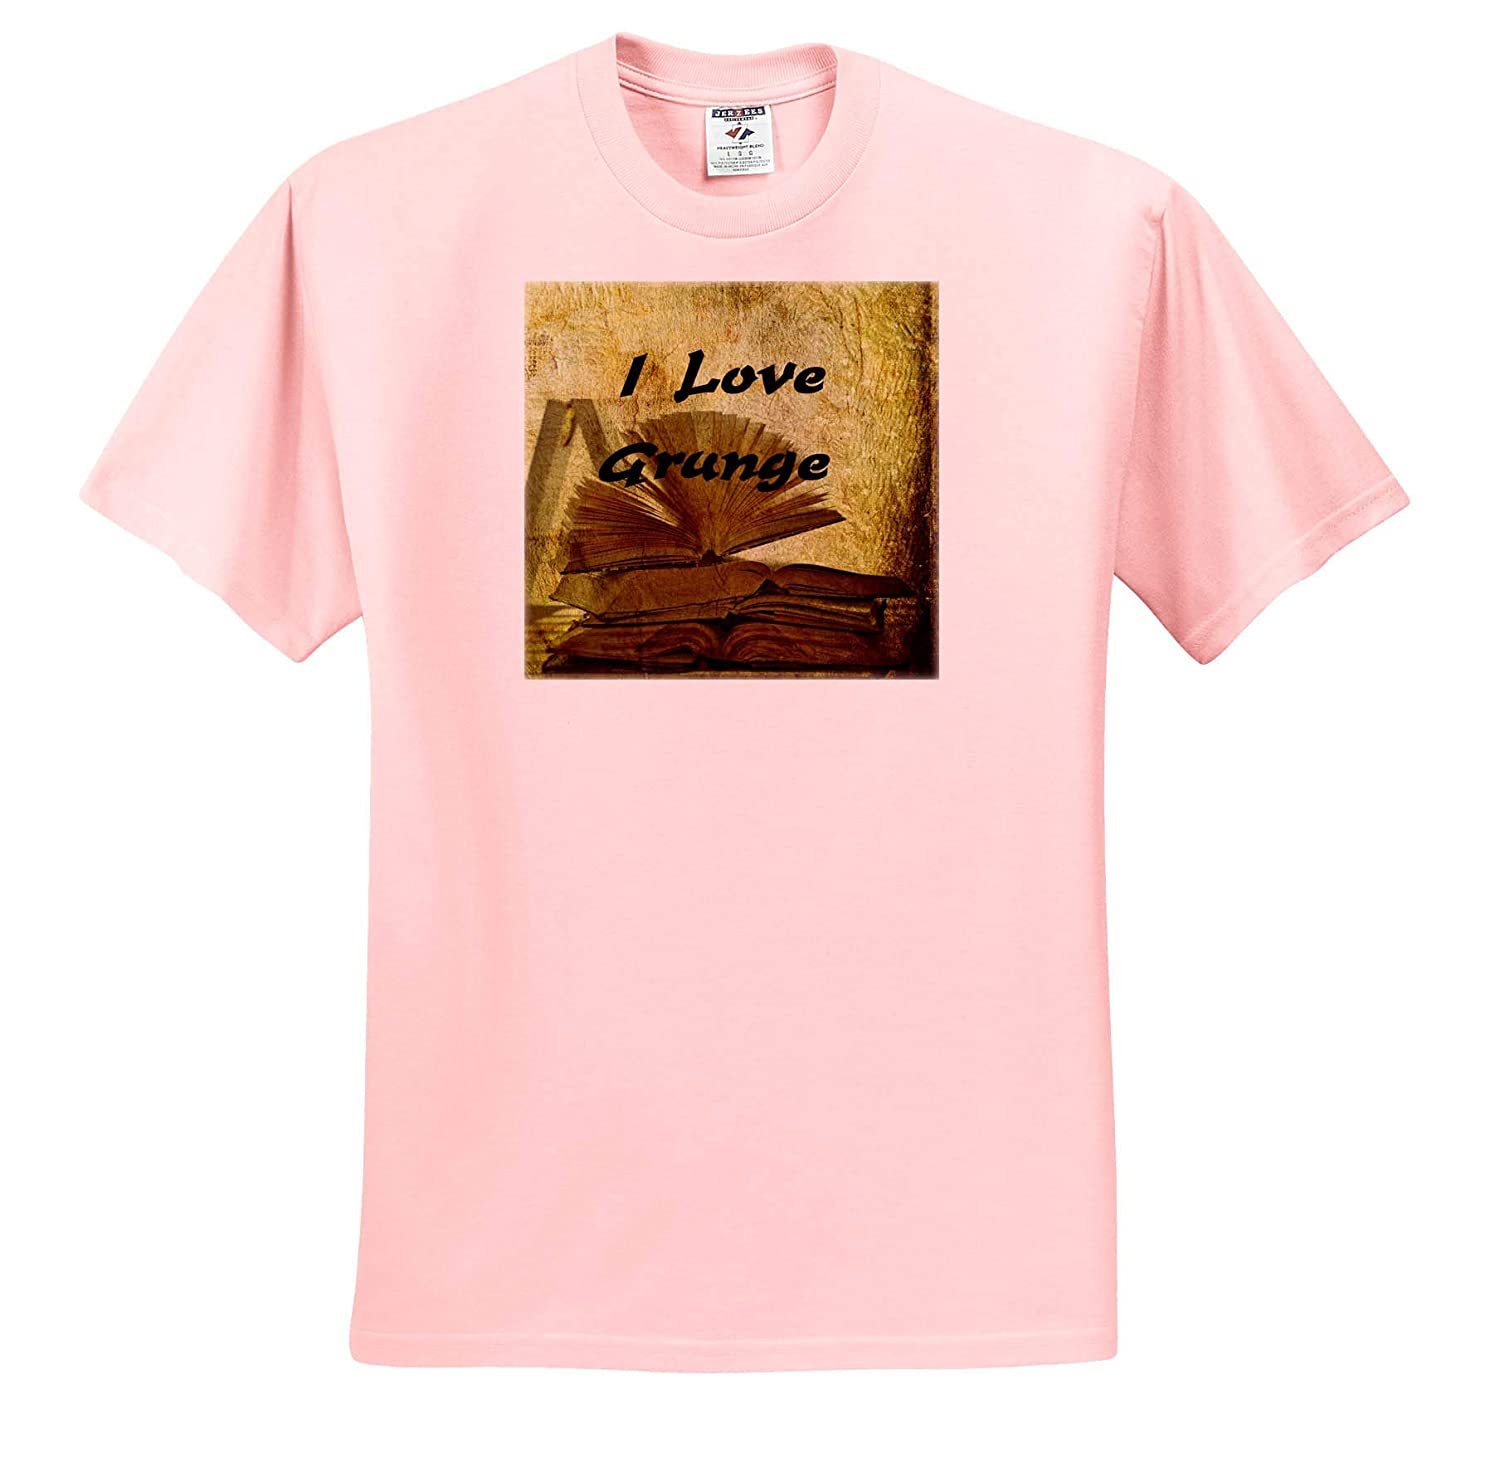 I Love Books 3dRose Lens Art by Florene Image of I Love Grunge On Pile of Grungy Books ts/_312620 Adult T-Shirt XL